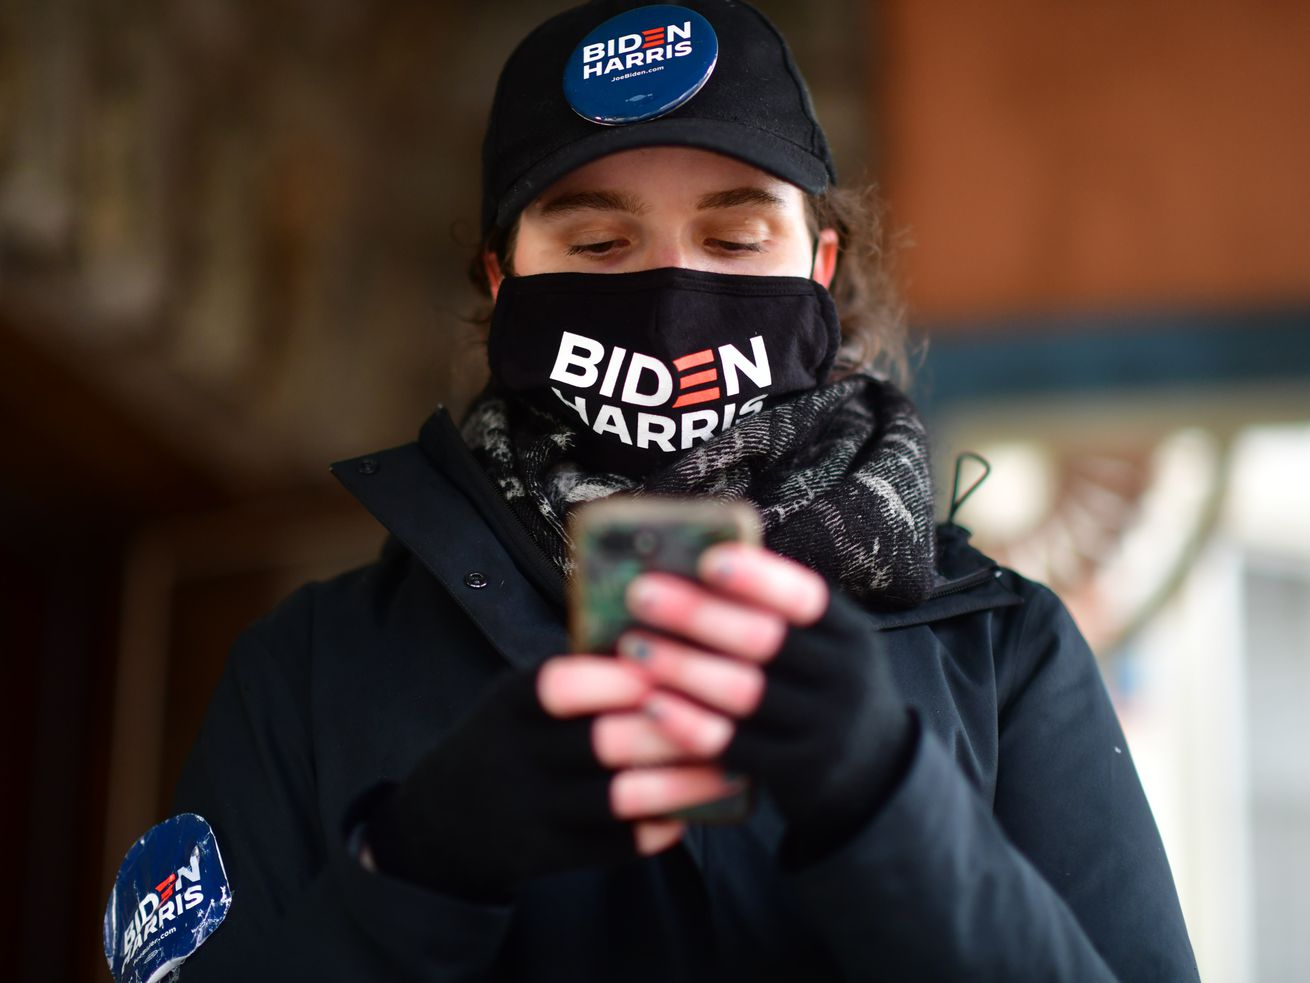 A person wearing a Biden-Harris campaign face mask looks at their phone.